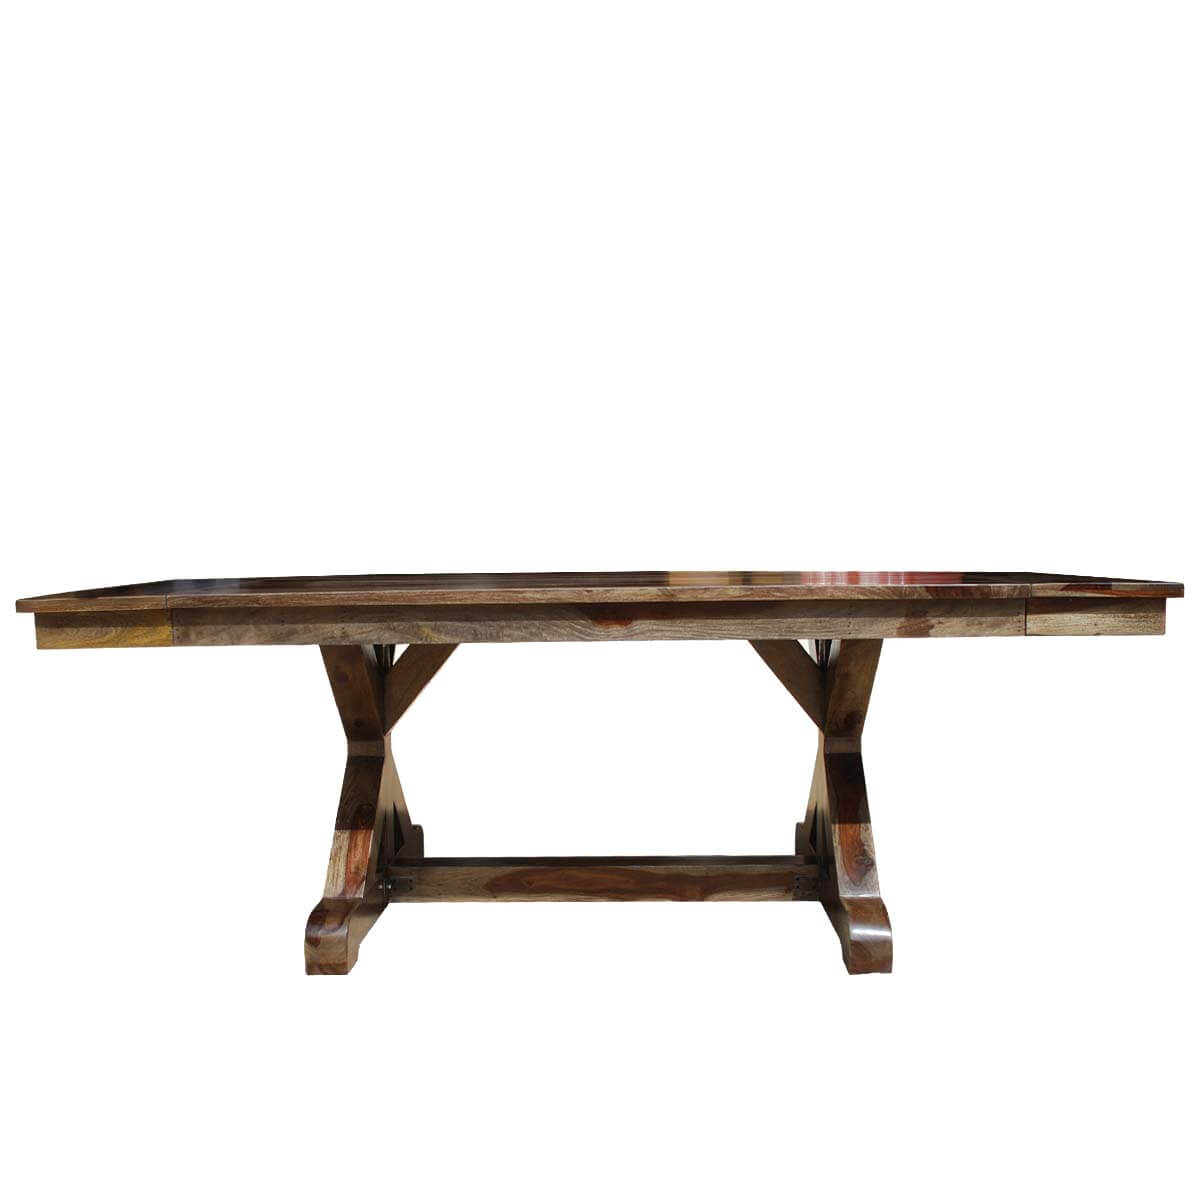 McKay X Base Solid Wood Rustic Dining Table w Extension : 44223 from sierralivingconcepts.com size 1200 x 1200 jpeg 65kB